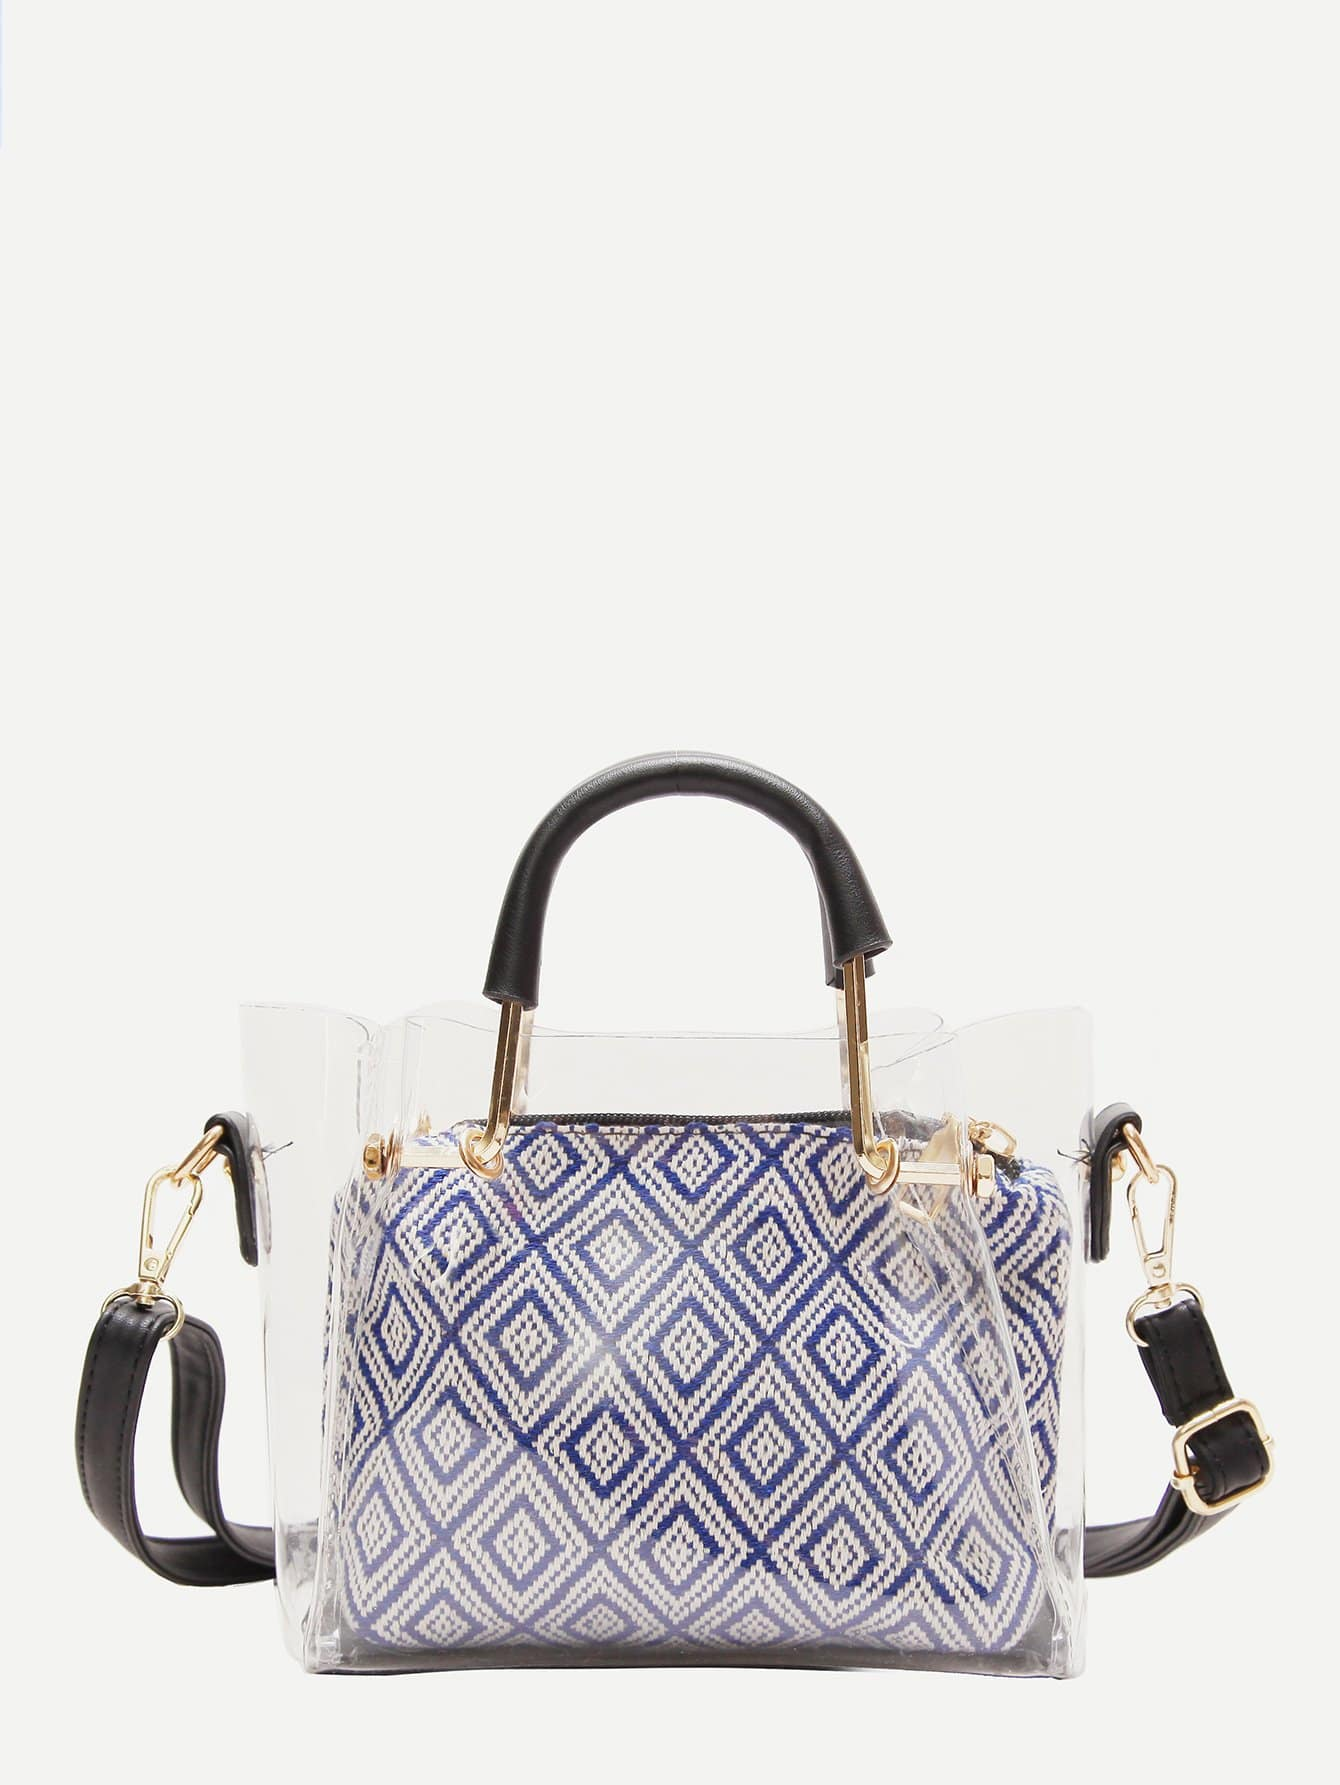 Clear Bag With Geometric Pattern Inner Pouch